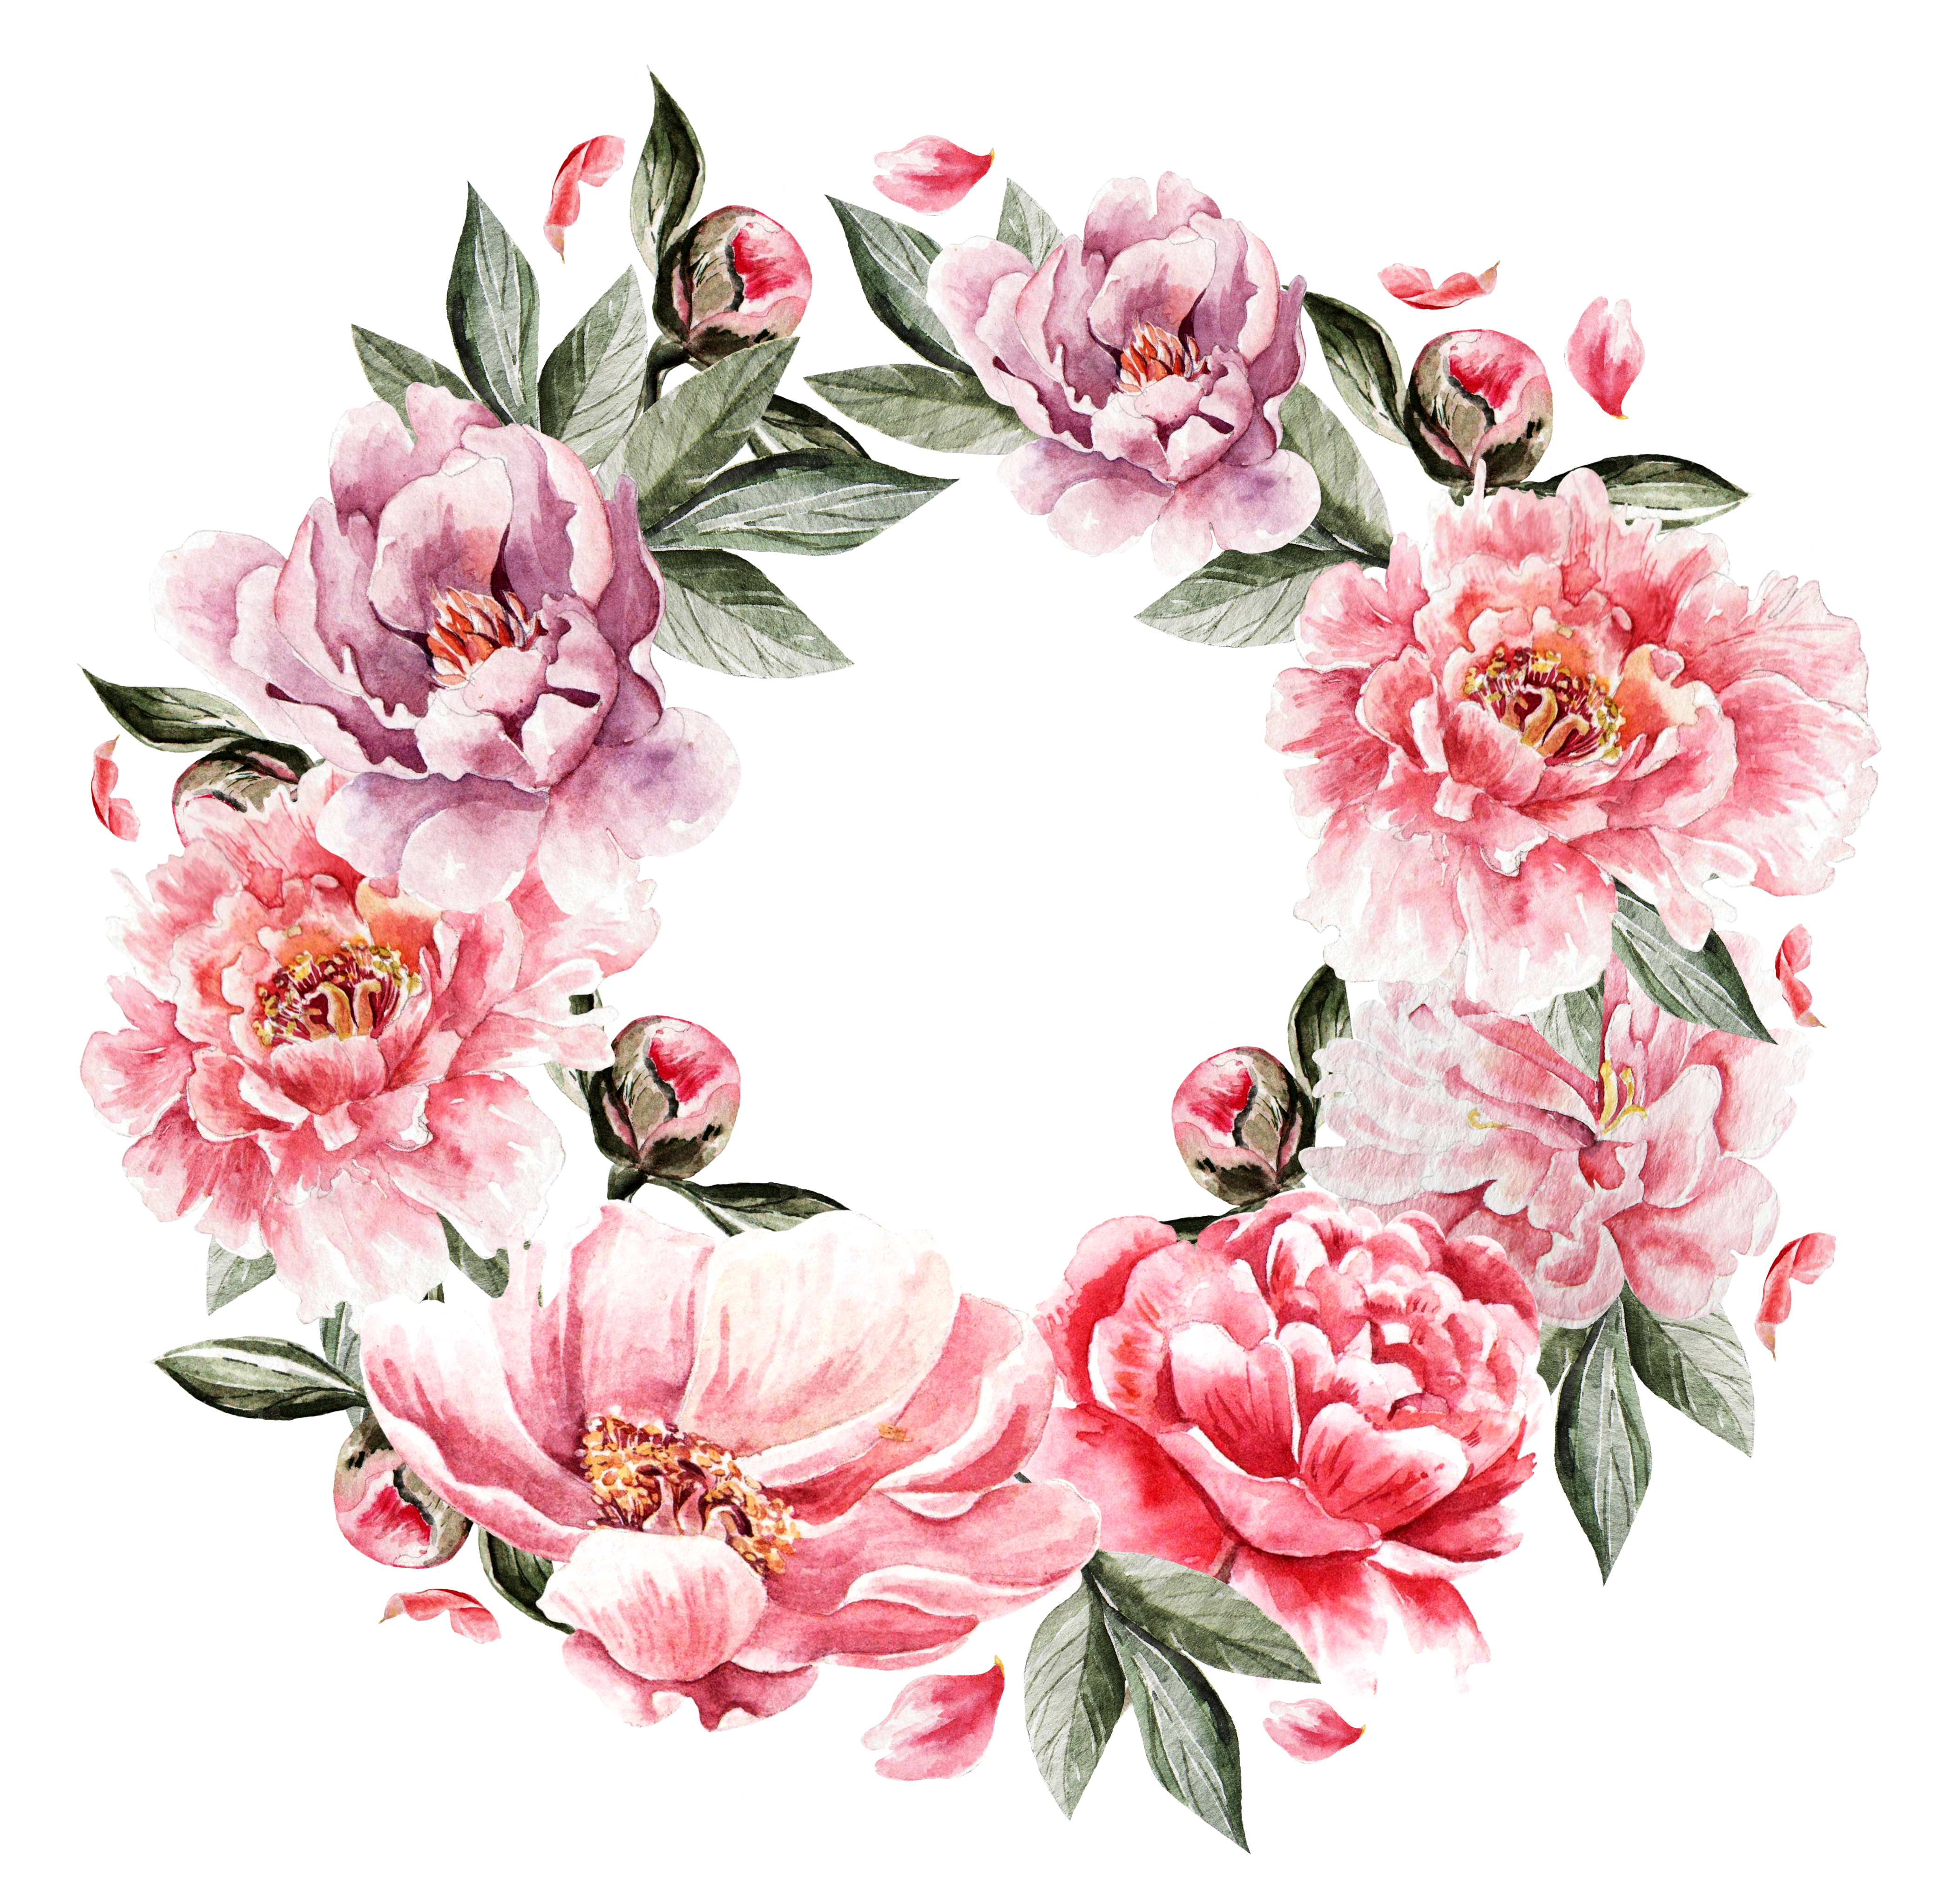 Flower cluster png. Painting wreath hand painted